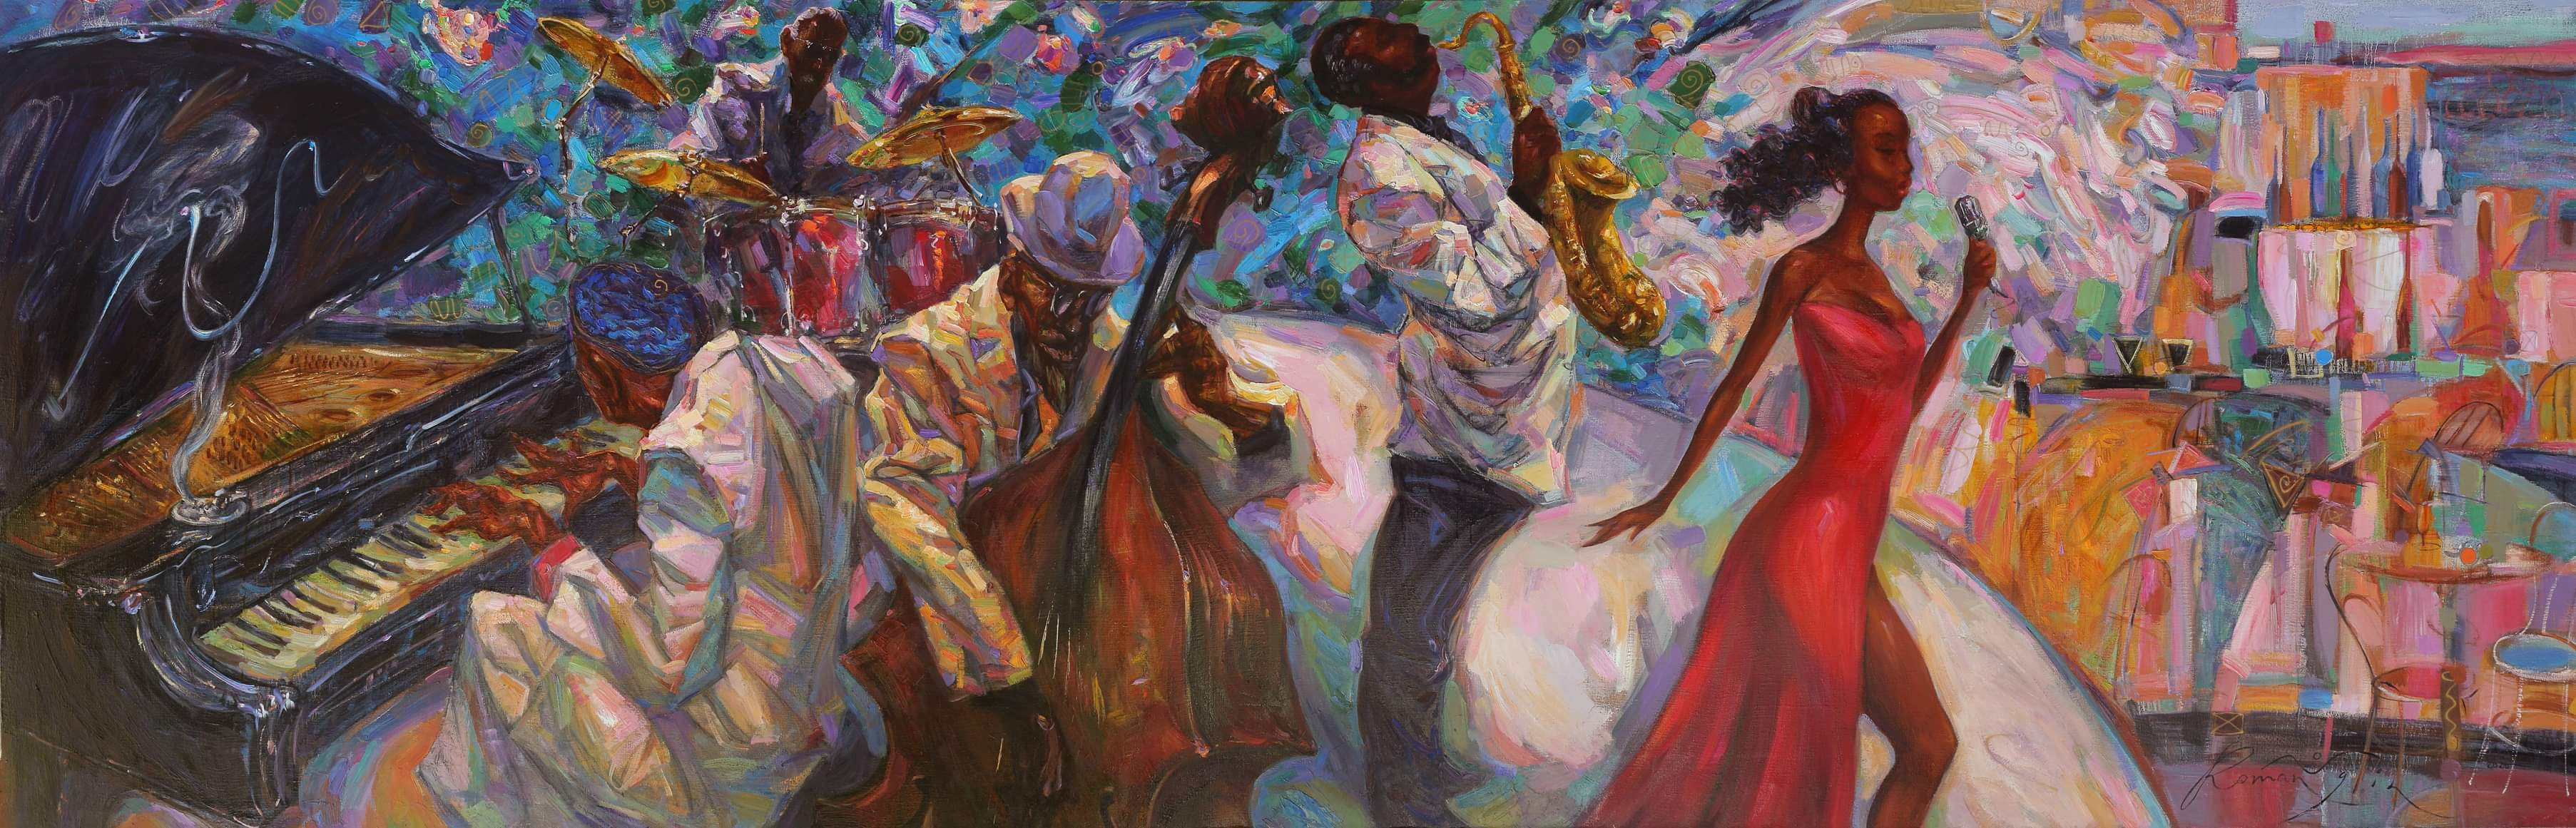 NEW ORLEANS JAZZ. 100X300 cm. oil on canvas. artist ROMAN NOGIN